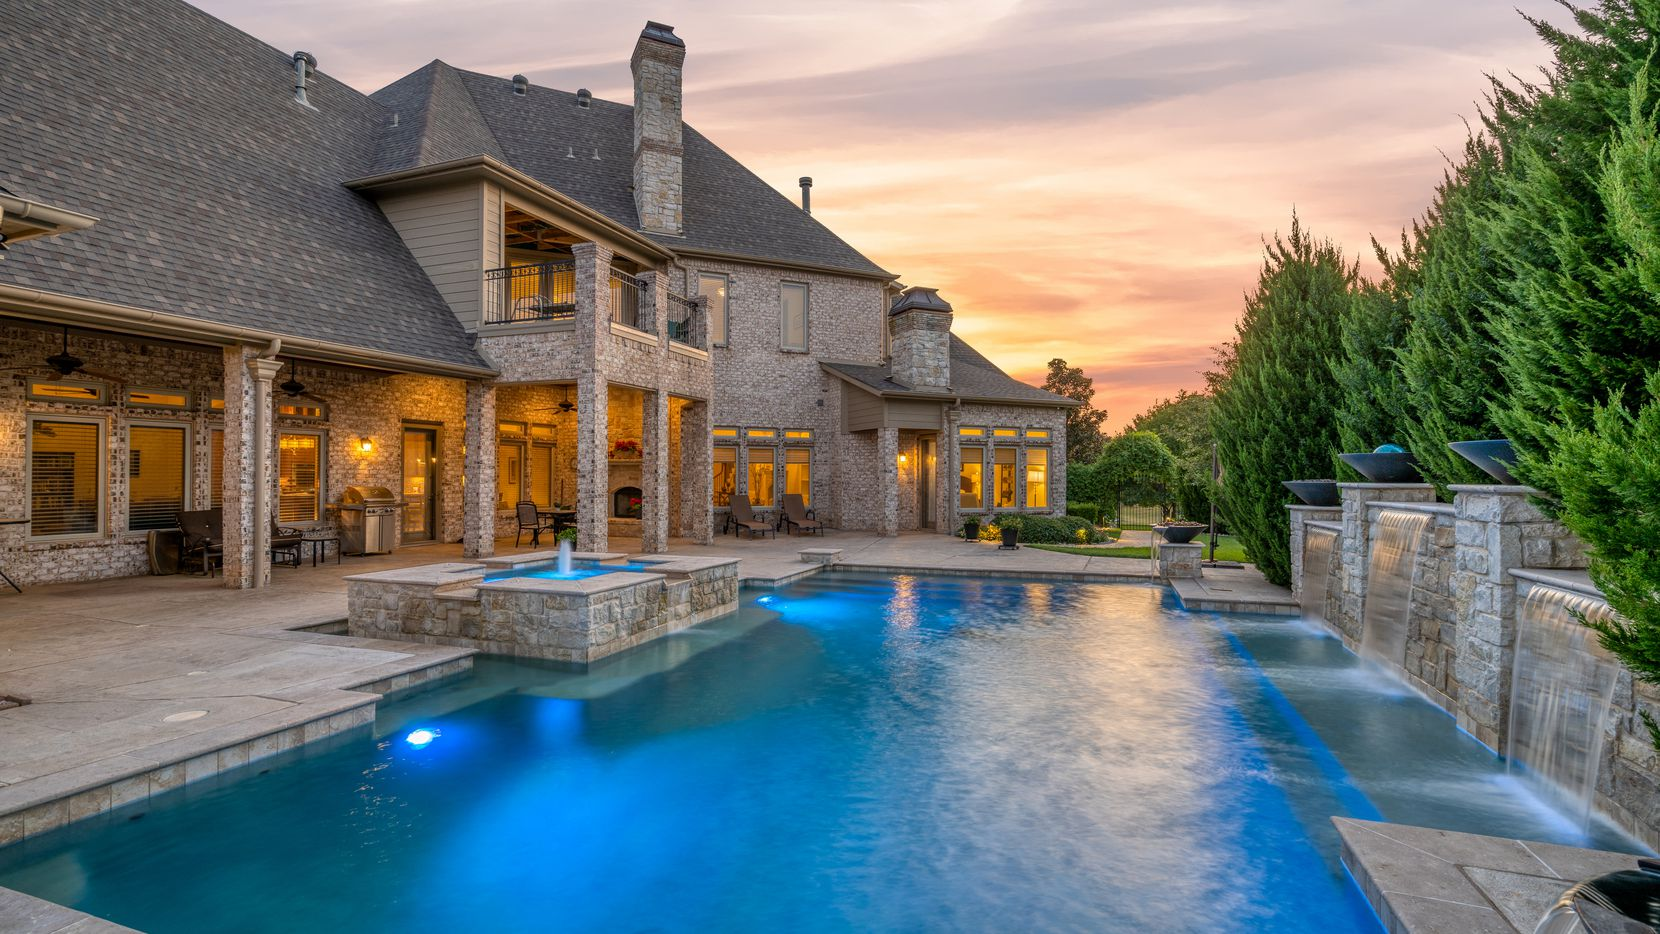 The five-bedroom home at 1701 Live Oak Lane in Southlake has game and media rooms, a pool and a hot tub.